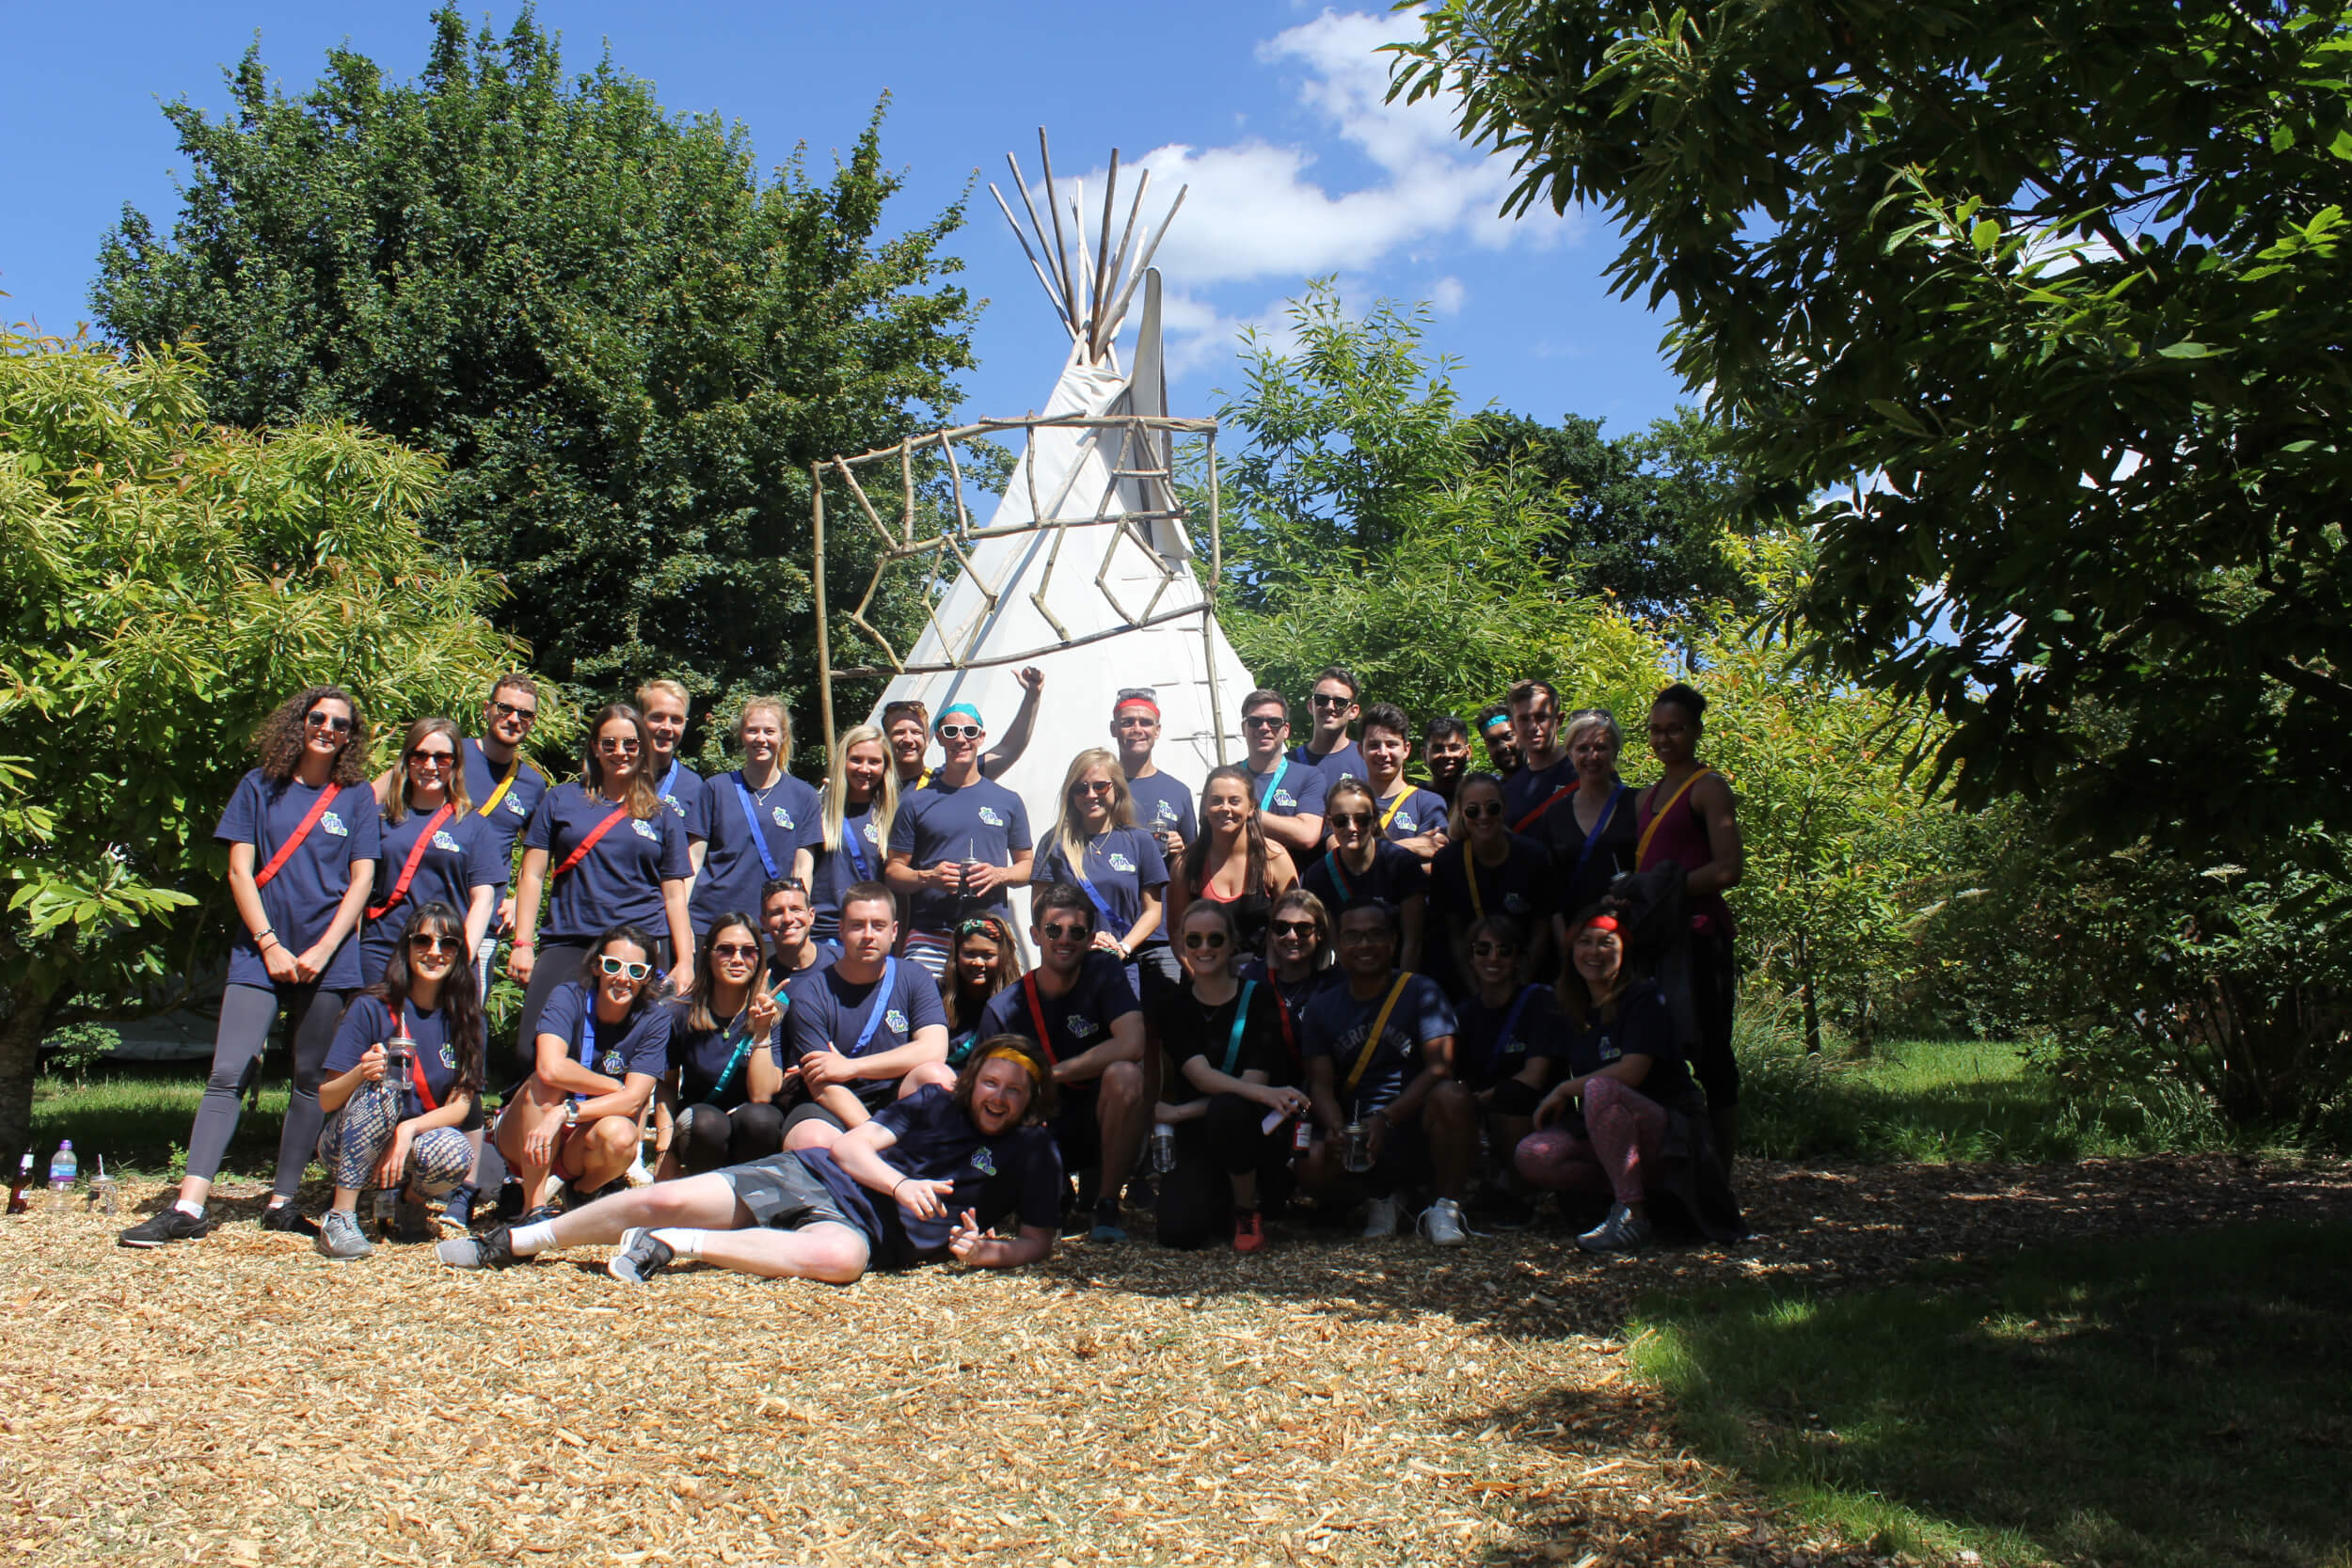 Vita Coco staff corporate team building at Plush Tents Glamping For Camp Kindred